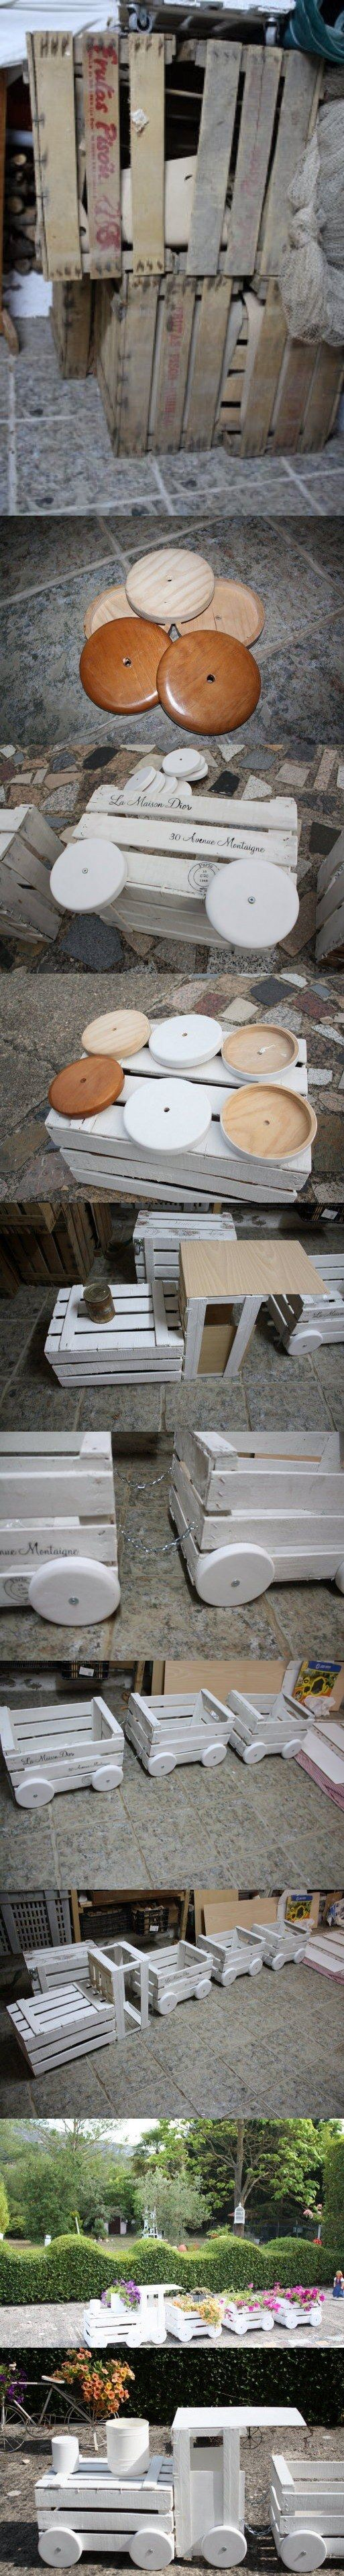 Ingeniosas macetas reciclando cajas de madera - facilisimo.com - DIY Wooden Train Planter